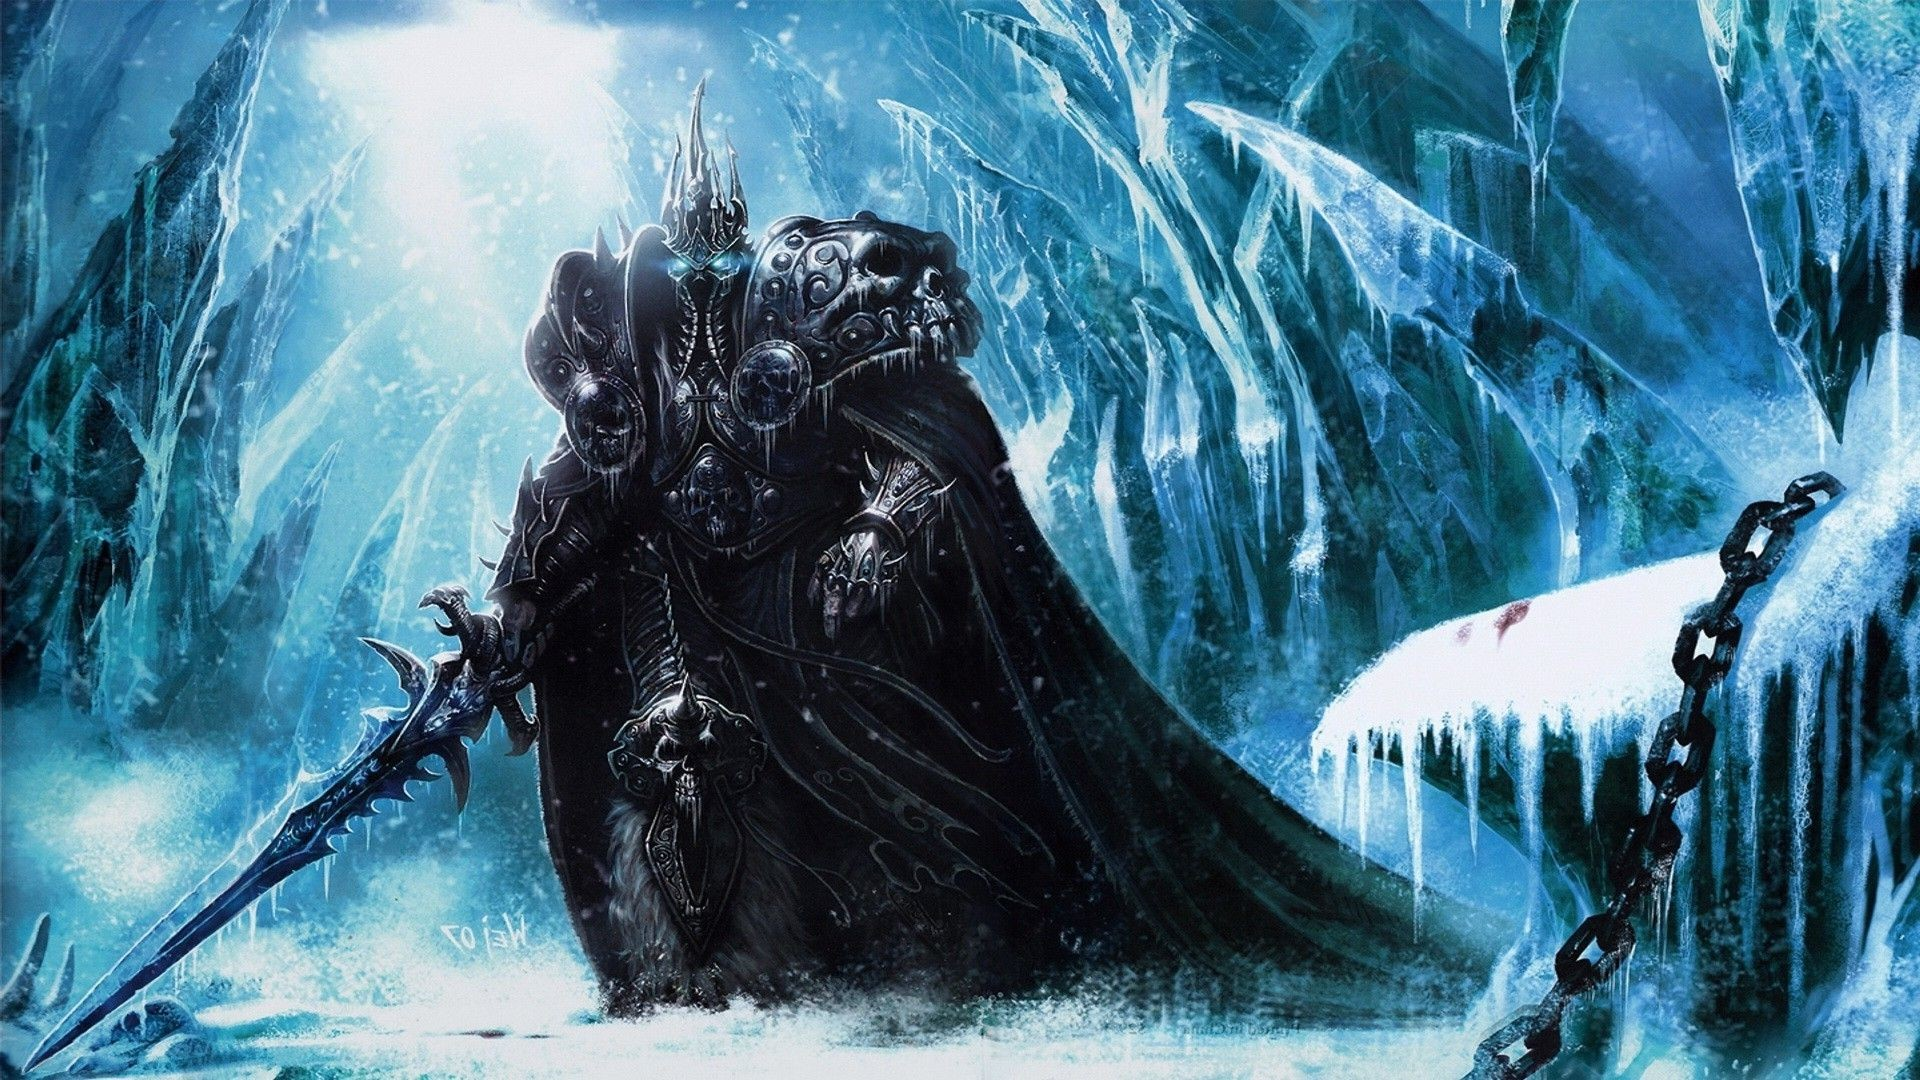 Res: 1920x1080, Find out: World Of Warcraft Wrath of The Lich King wallpaper on 1583×845